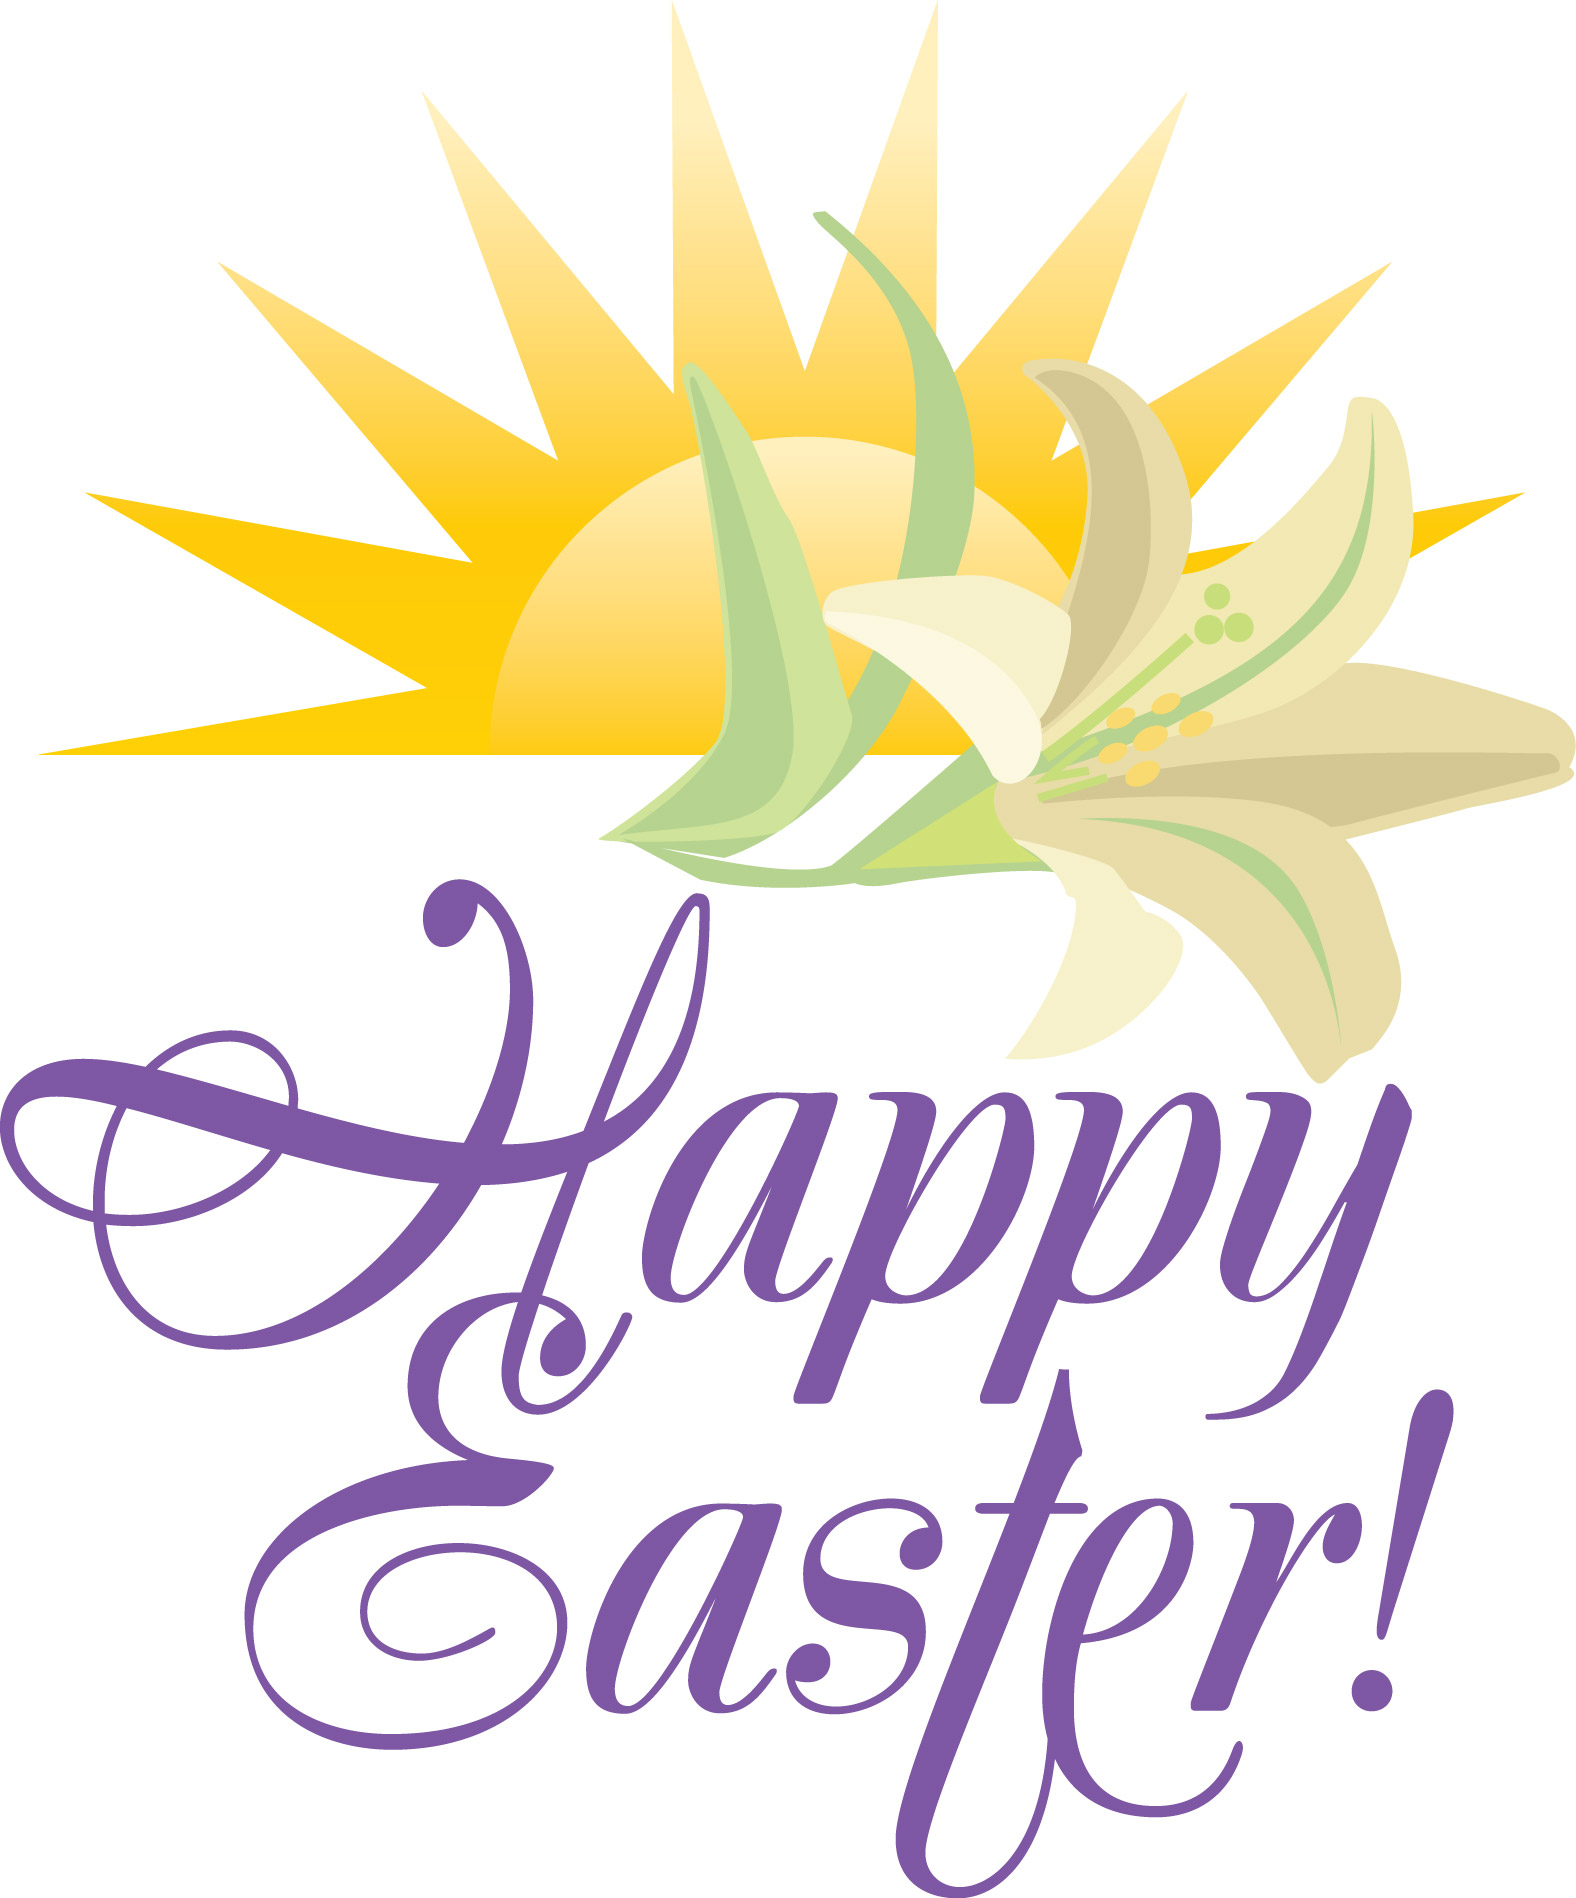 Images Of Easter Sunday Images Christian The Miracle Of Easter. Christian easter cross clipart ...